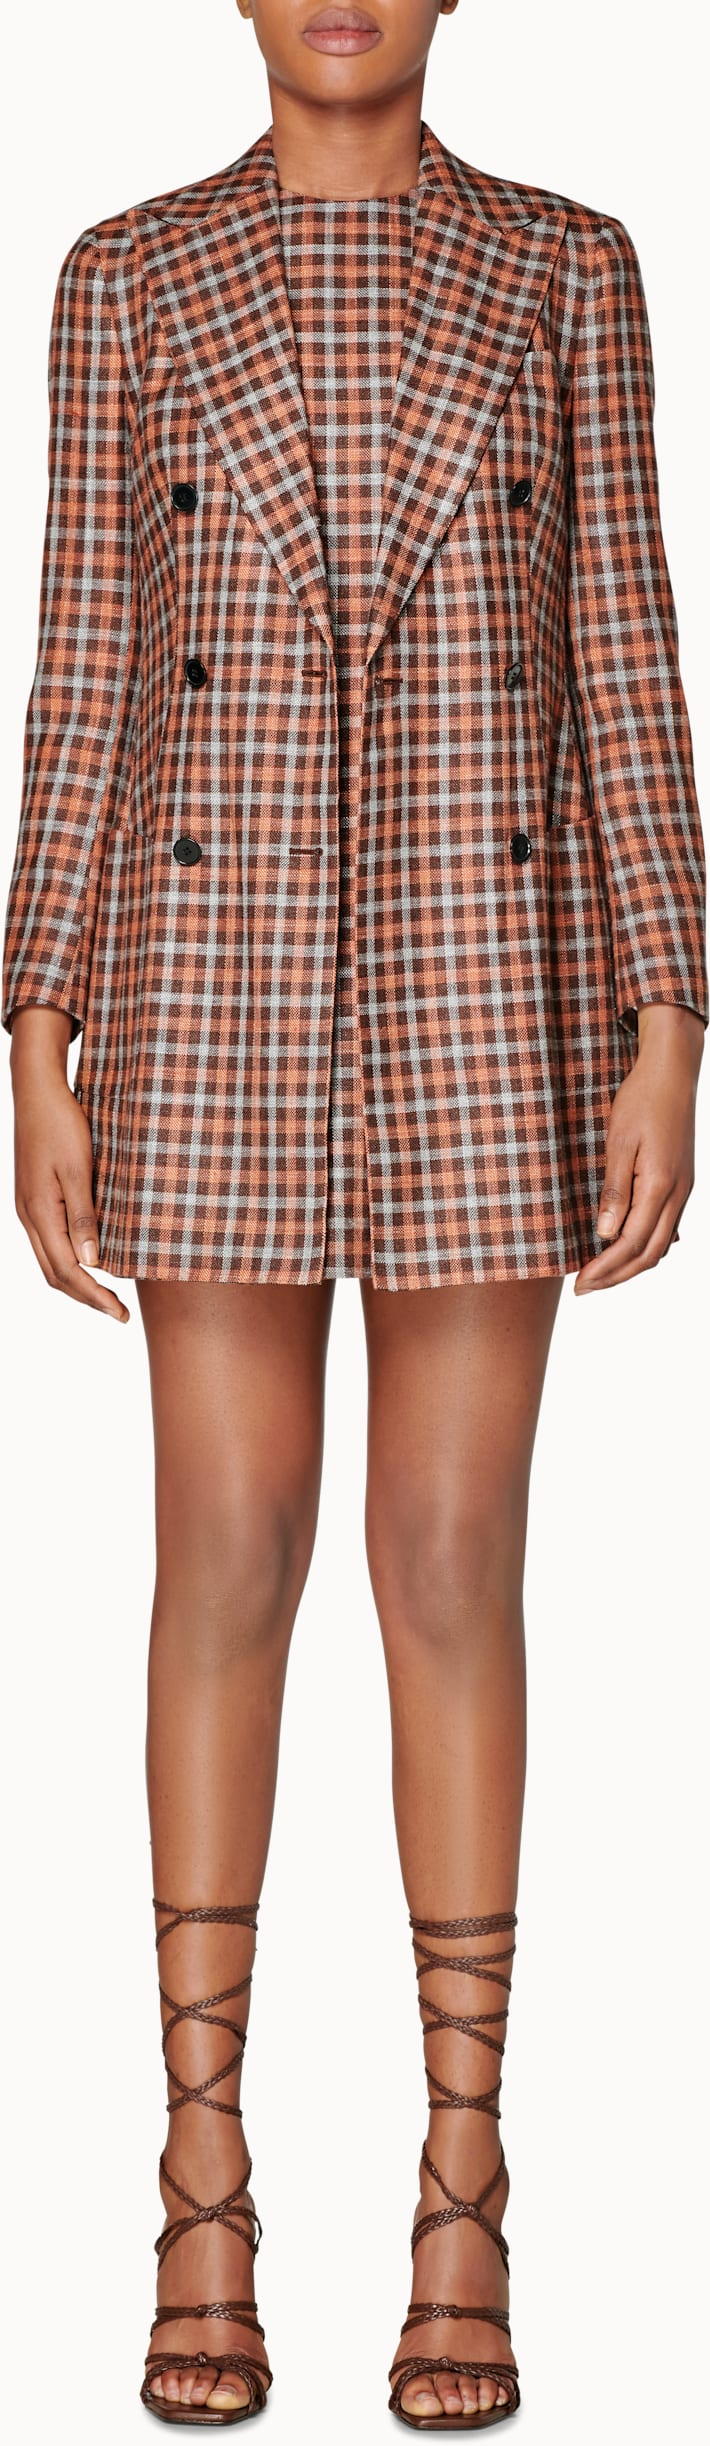 Joss Brown Checked Jacket